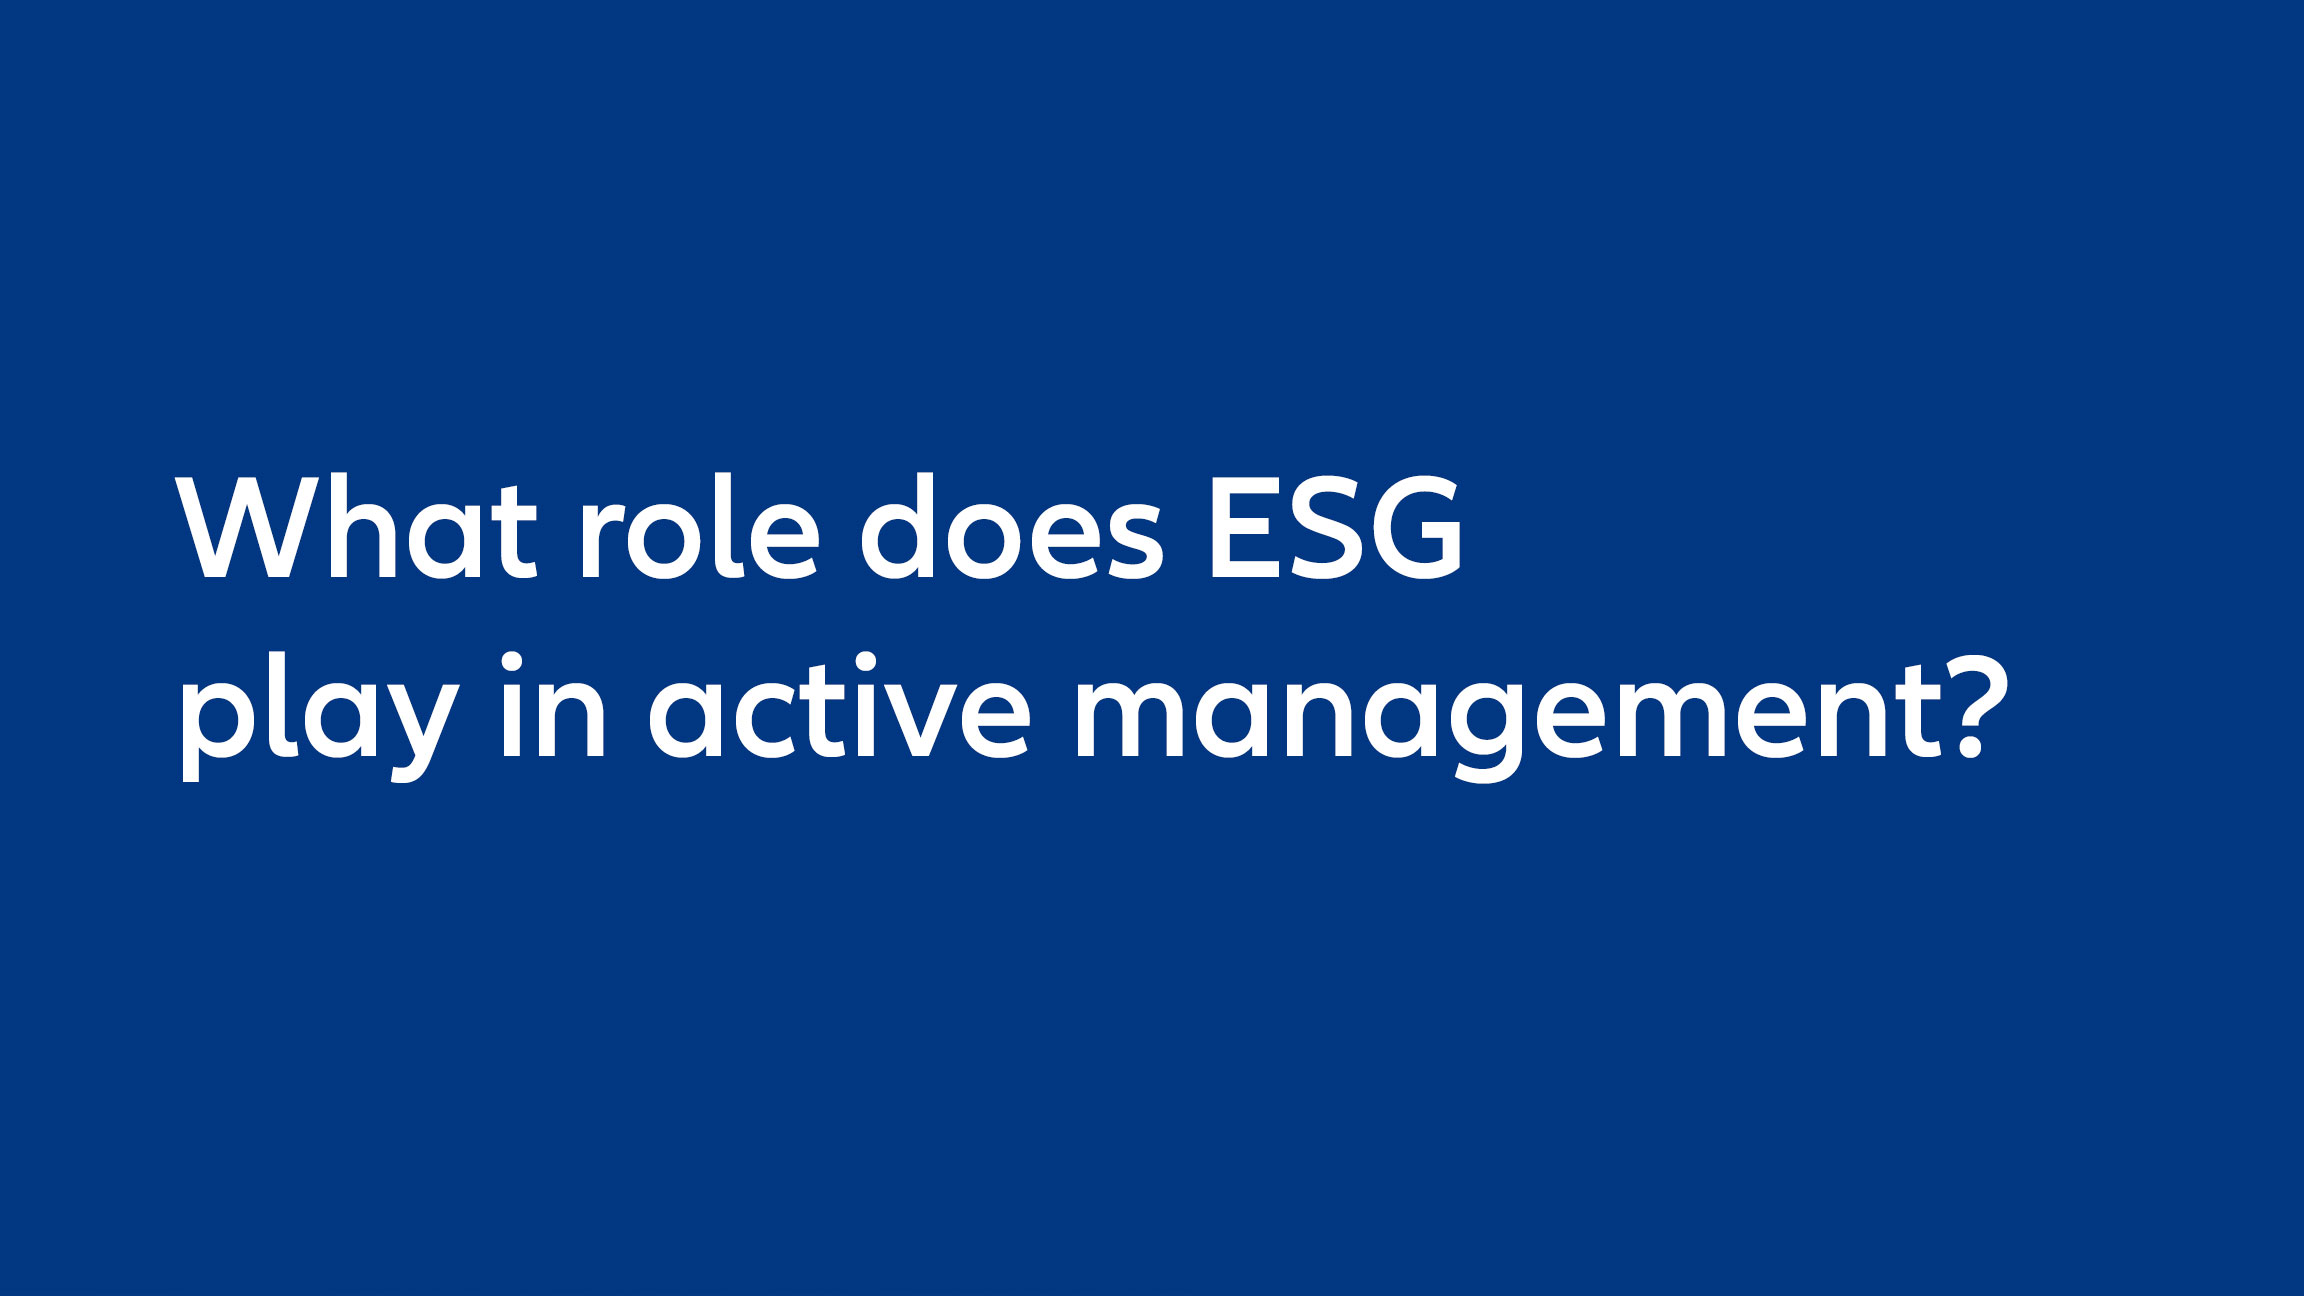 What role does ESG play in active management?